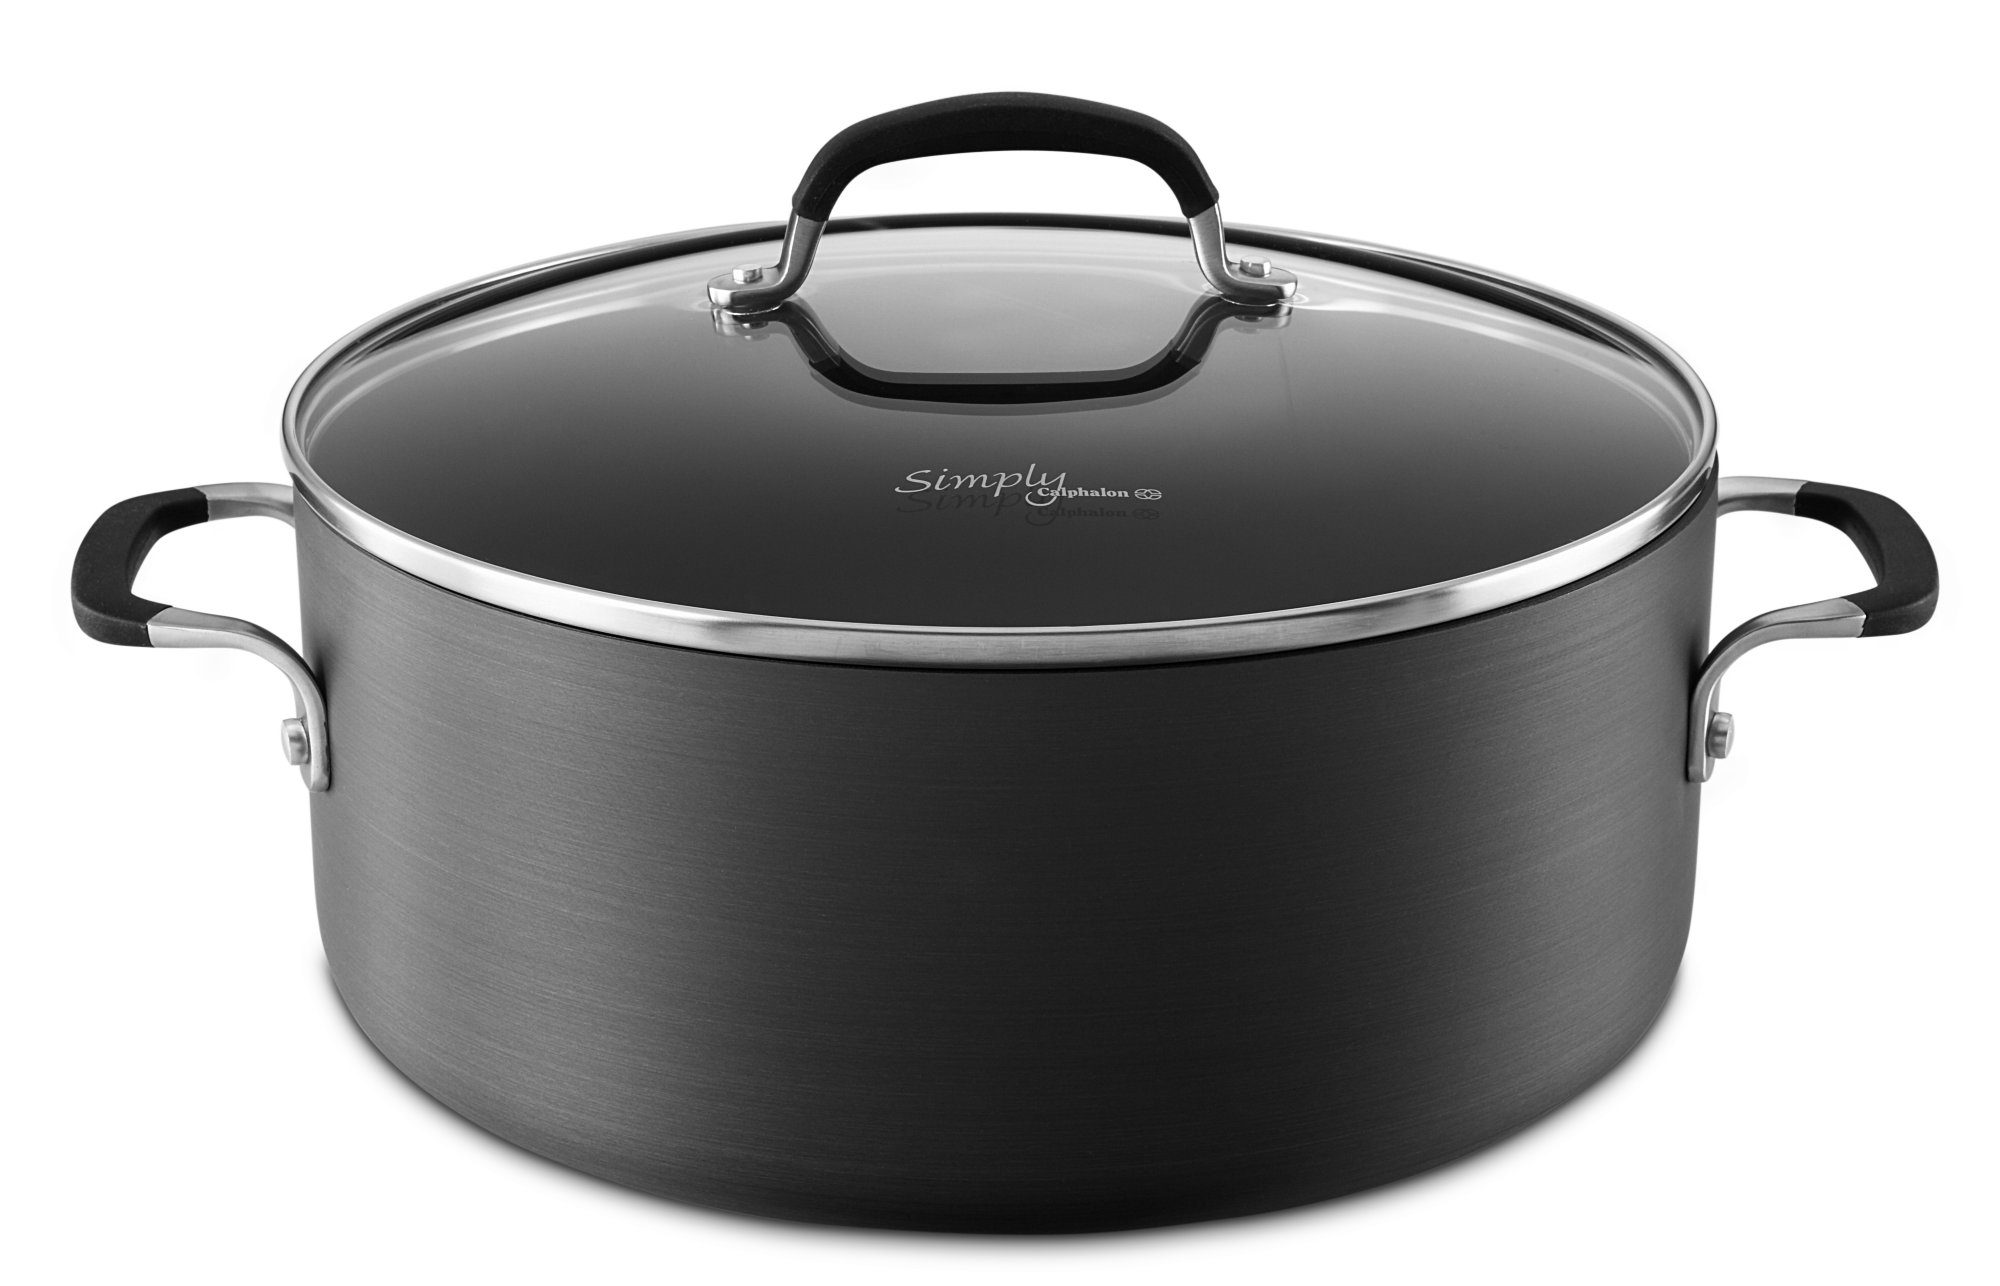 Simply Calphalon Nonstick 7-qt. Dutch Oven with Cover